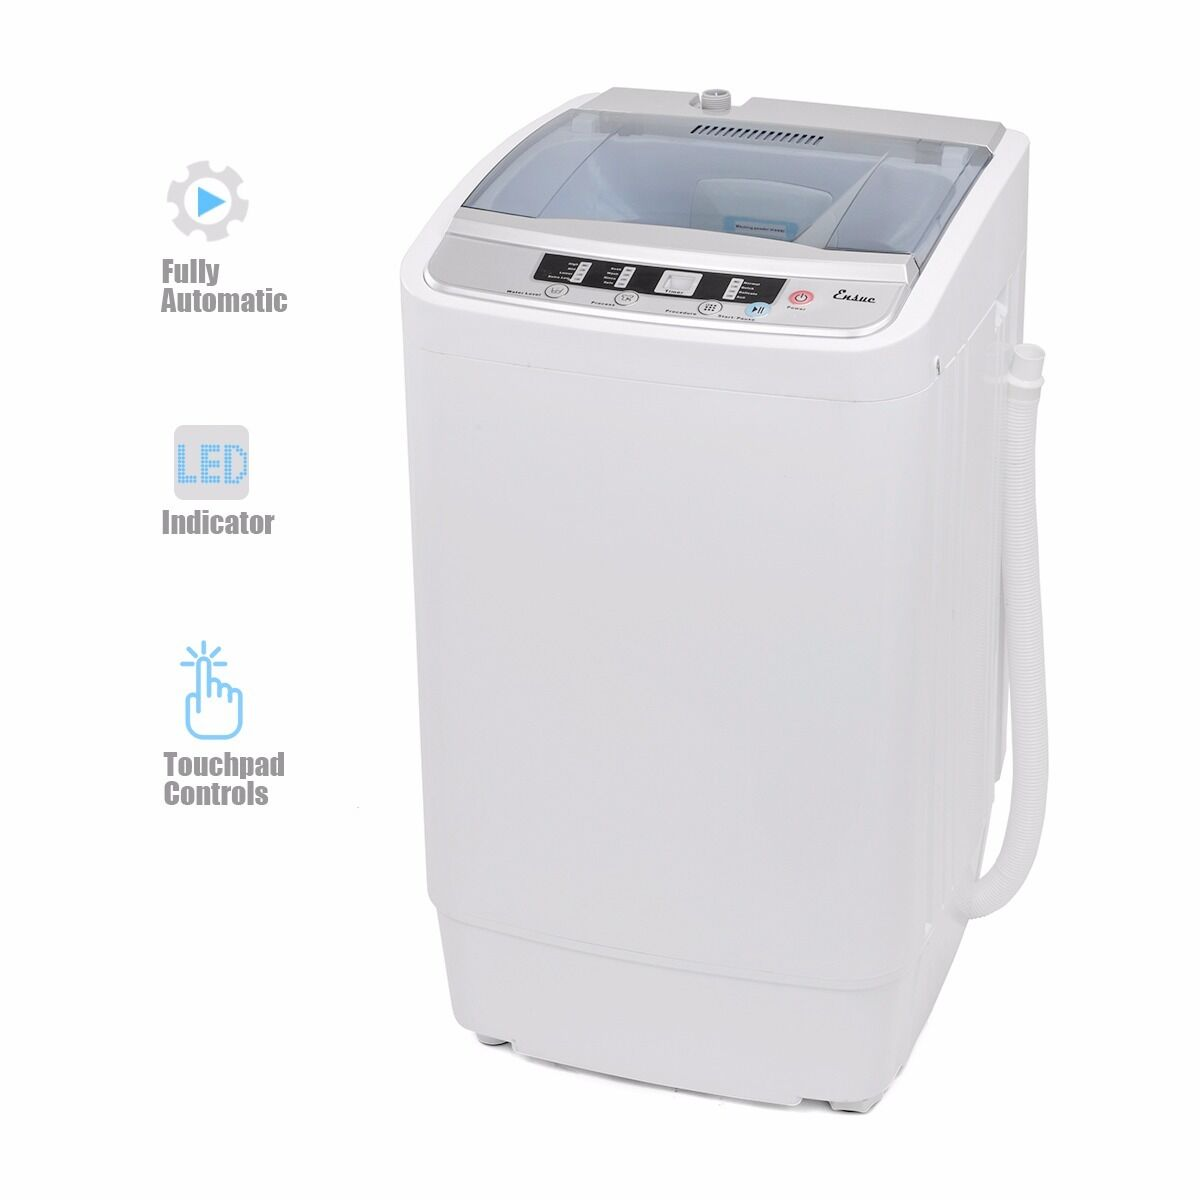 Clothes Drying Machine ~ The laundry super compact fully automatic washing drying